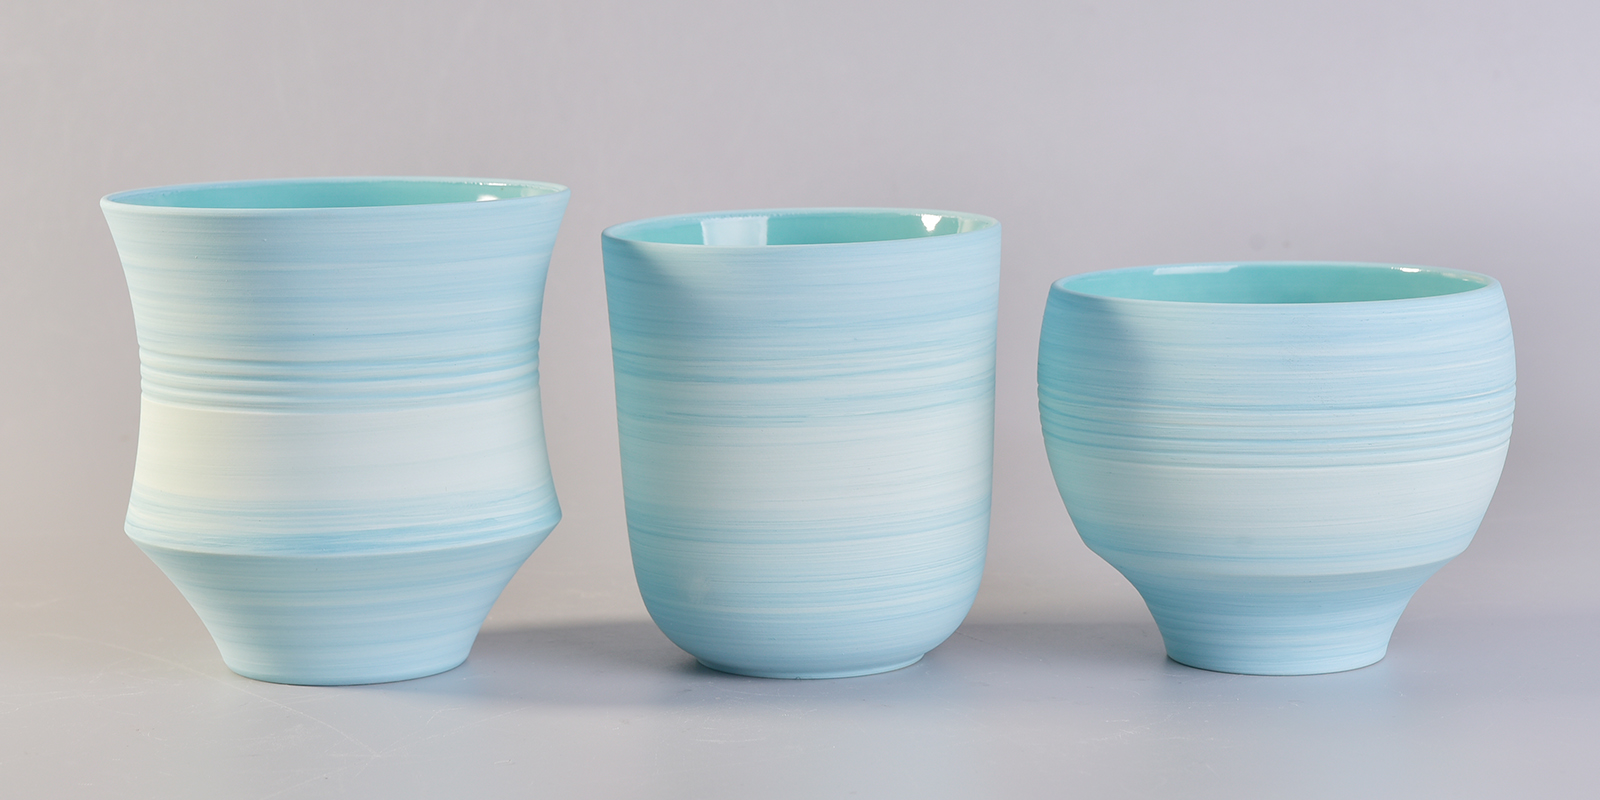 10oz Ceramic Candle Holder With Spray Colors